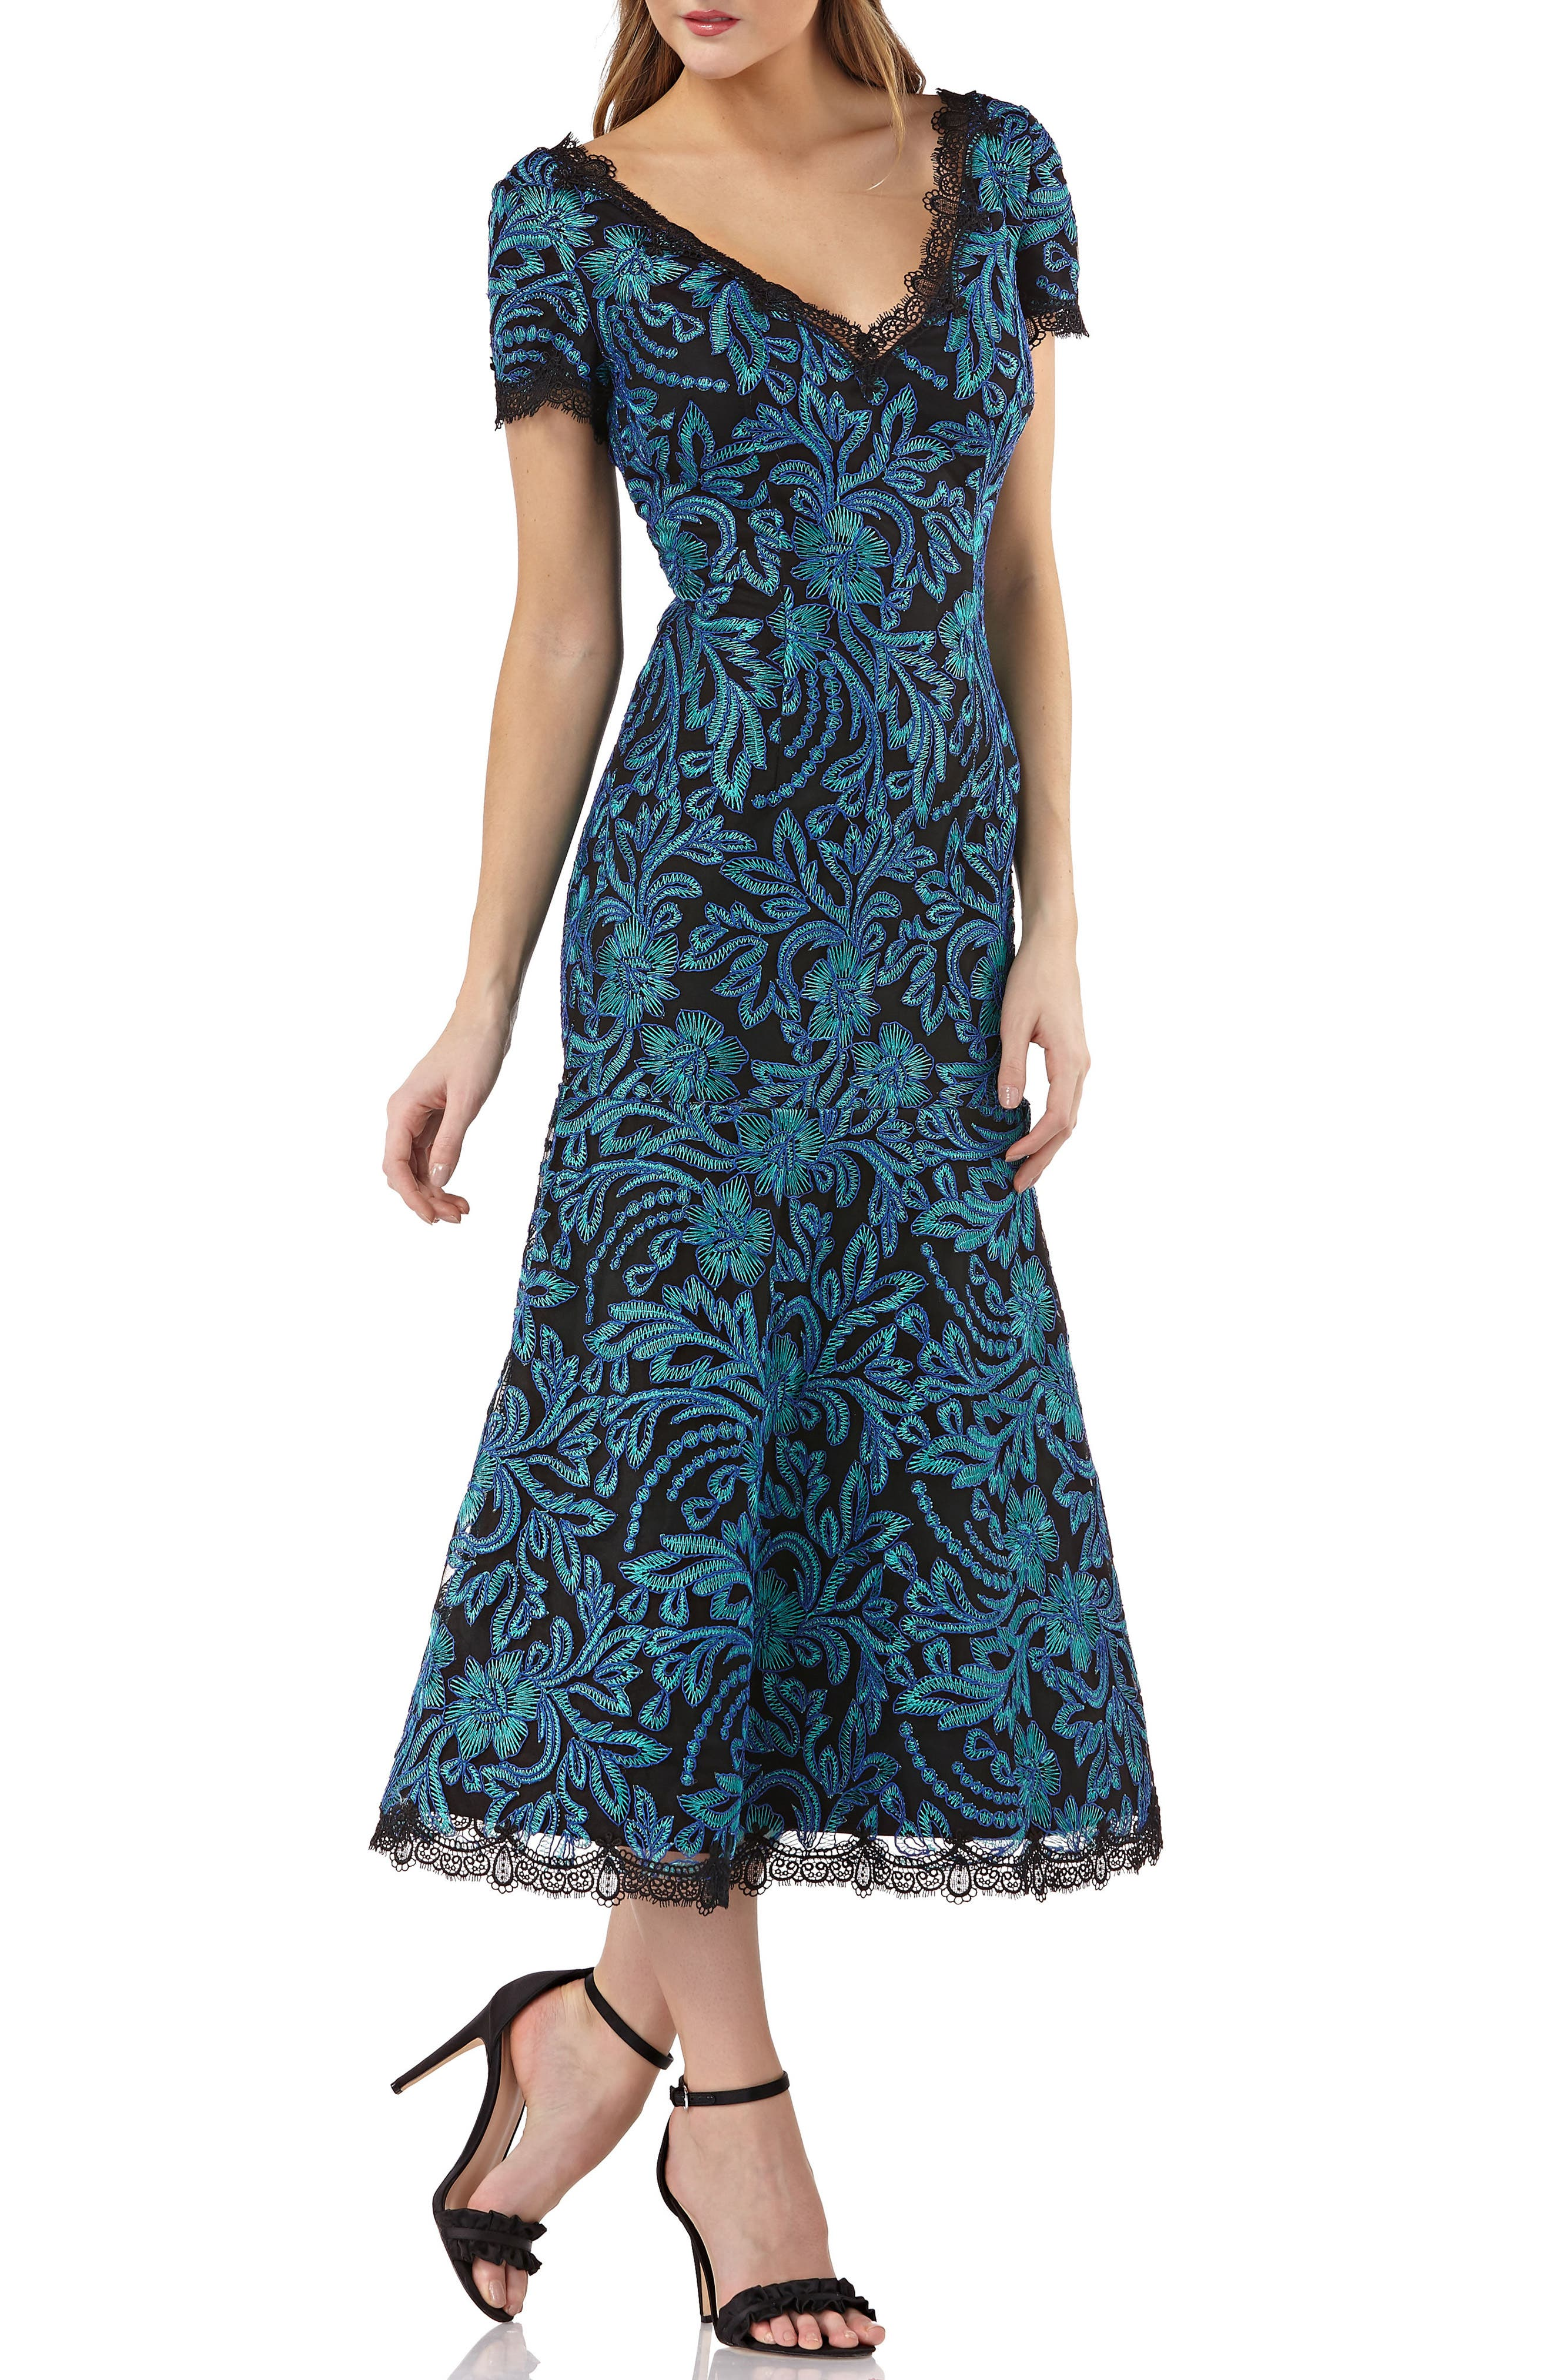 JS COLLECTIONS EMBROIDERED MESH DRESS